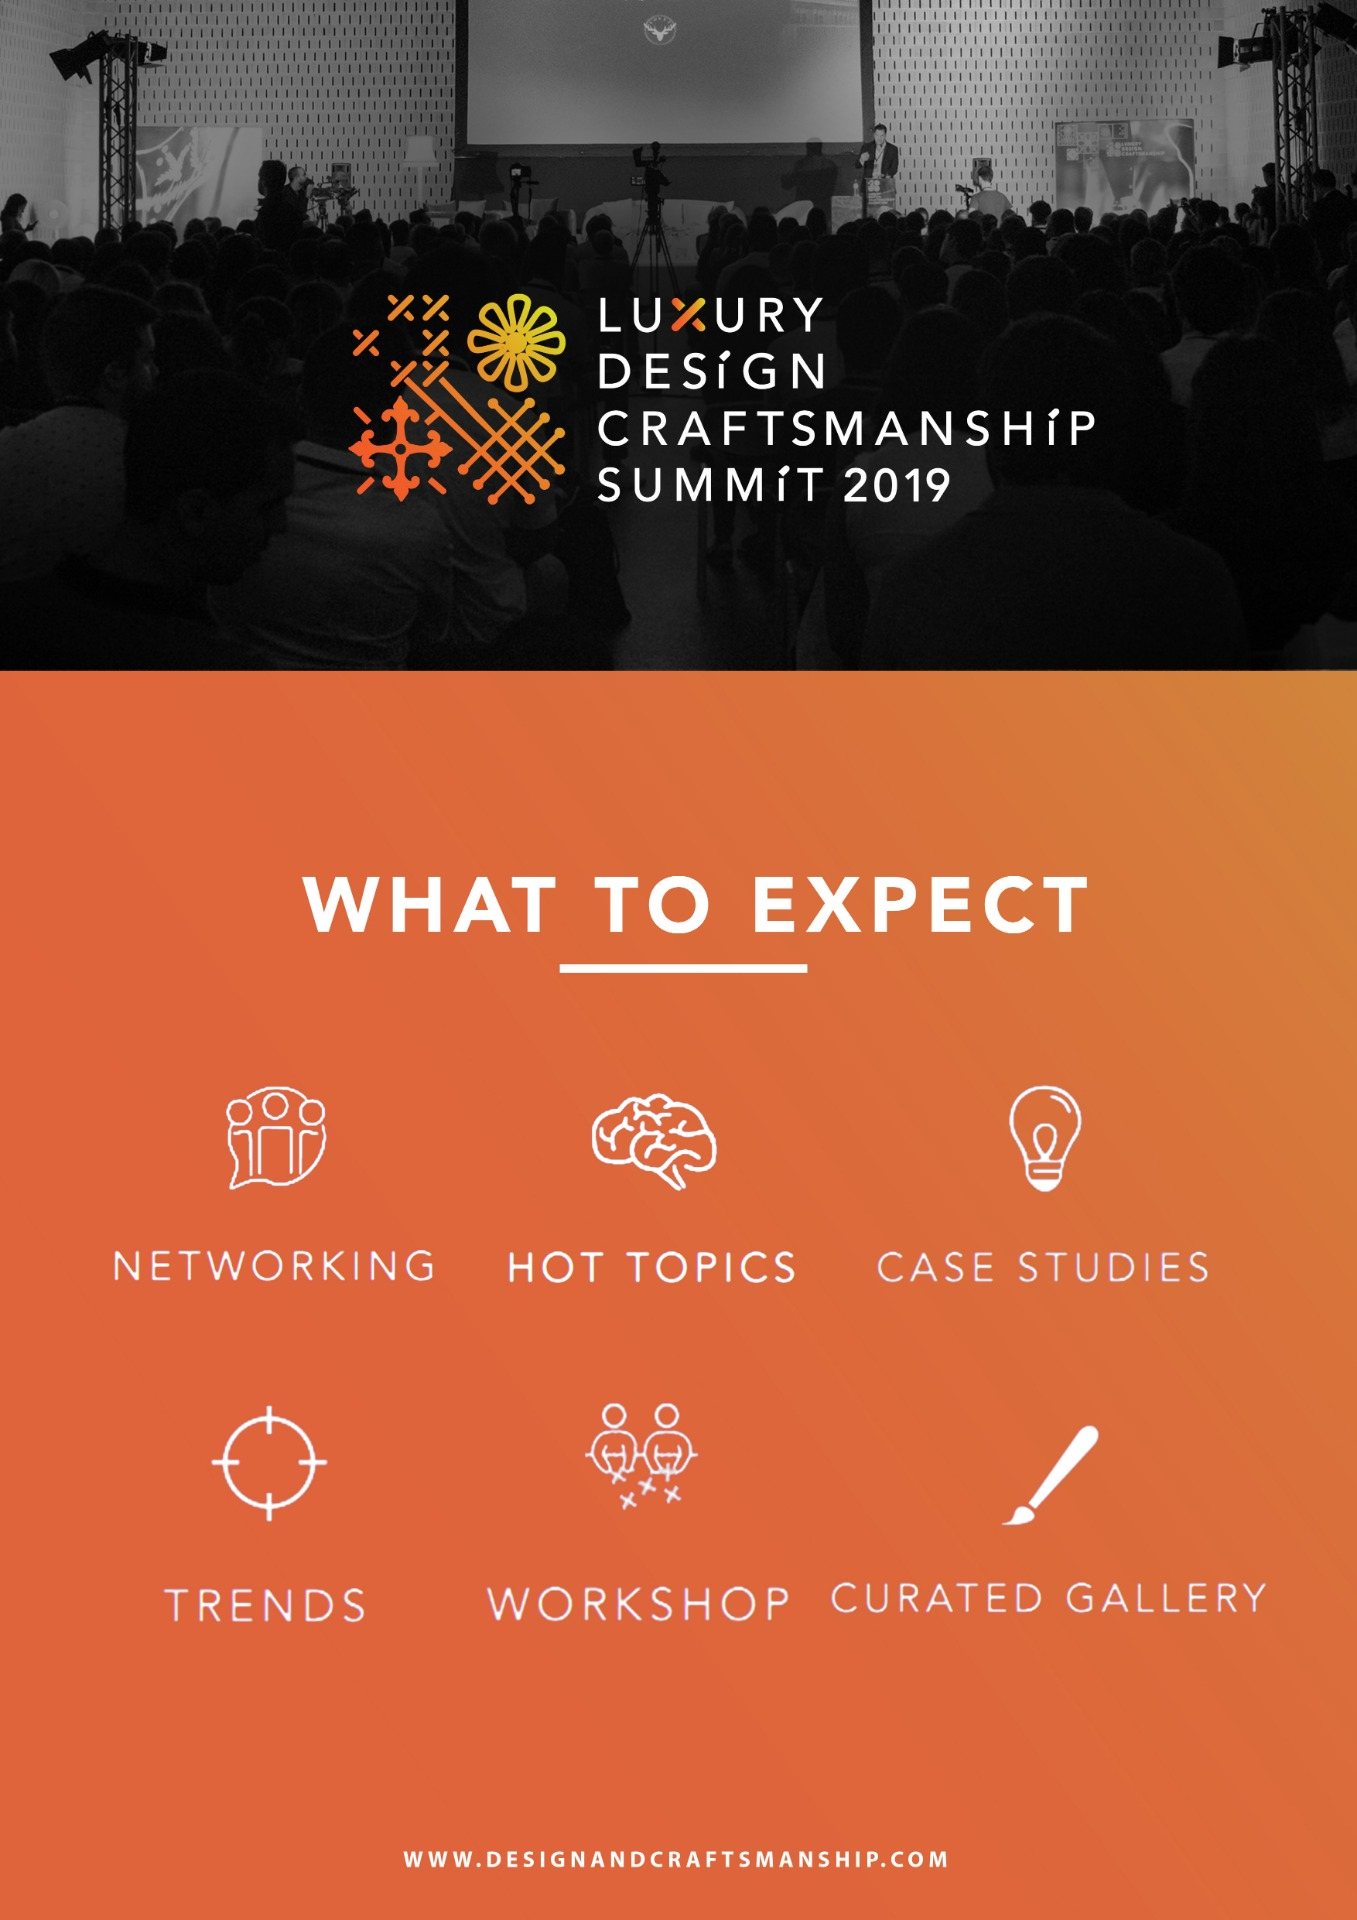 Celebrating Craftsmanship The Luxury Design+Craftsmanship Summit 2019 (1) luxury design Celebrating Craftsmanship: The Luxury Design+Craftsmanship Summit 2019 Celebrating Craftsmanship The Luxury DesignCraftsmanship Summit 2019 1